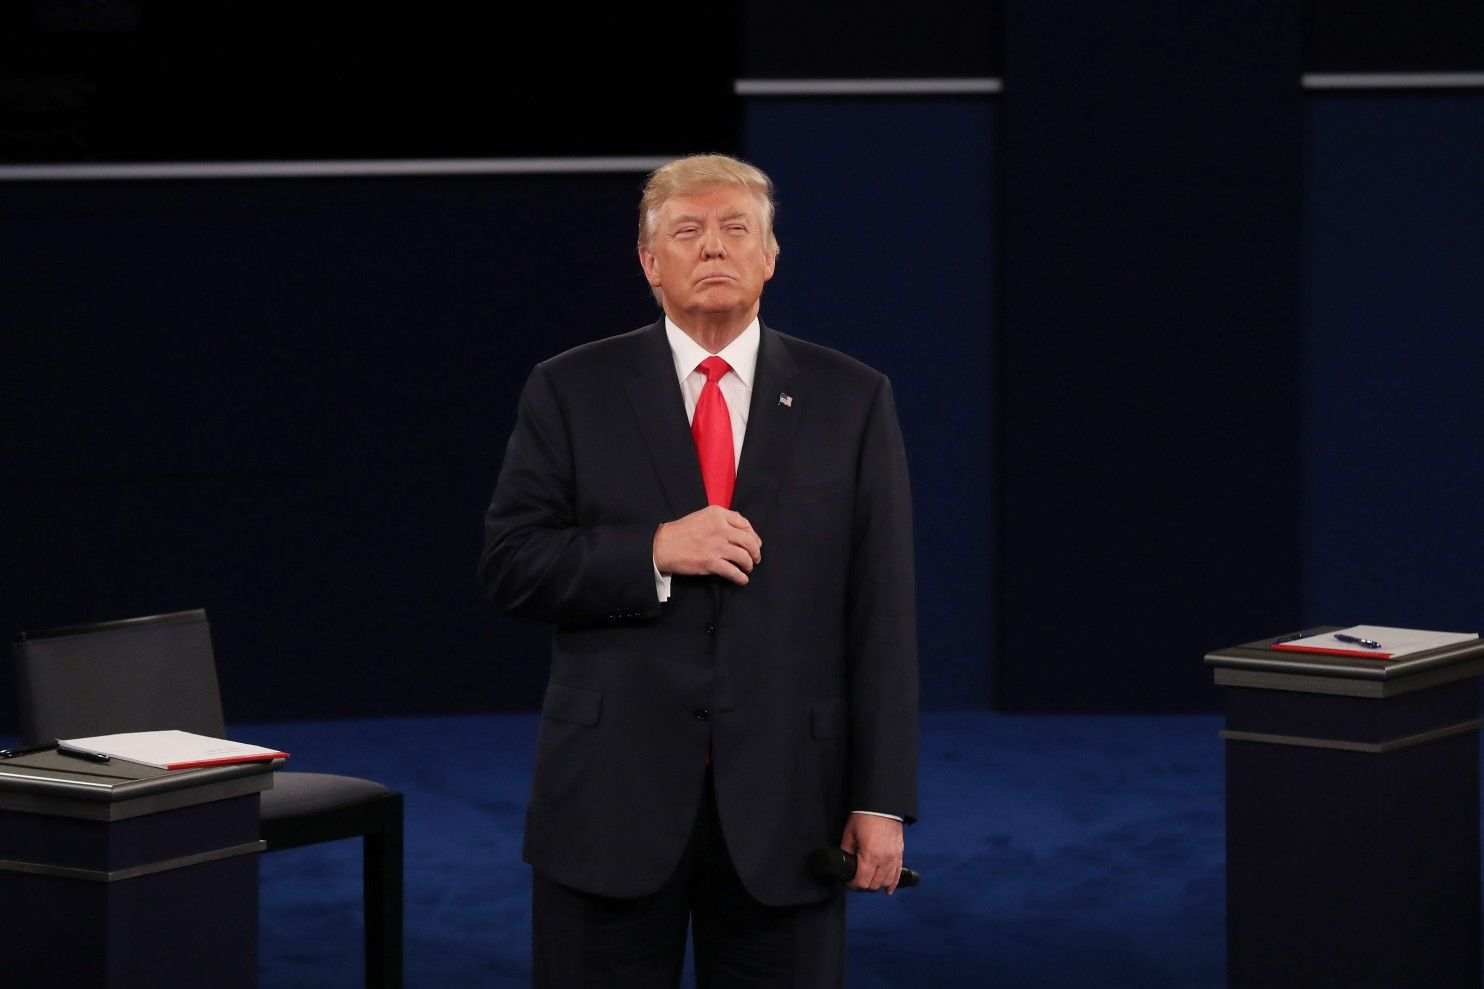 Four women accuse Trump of forcibly groping, kissing them - The Washington Post